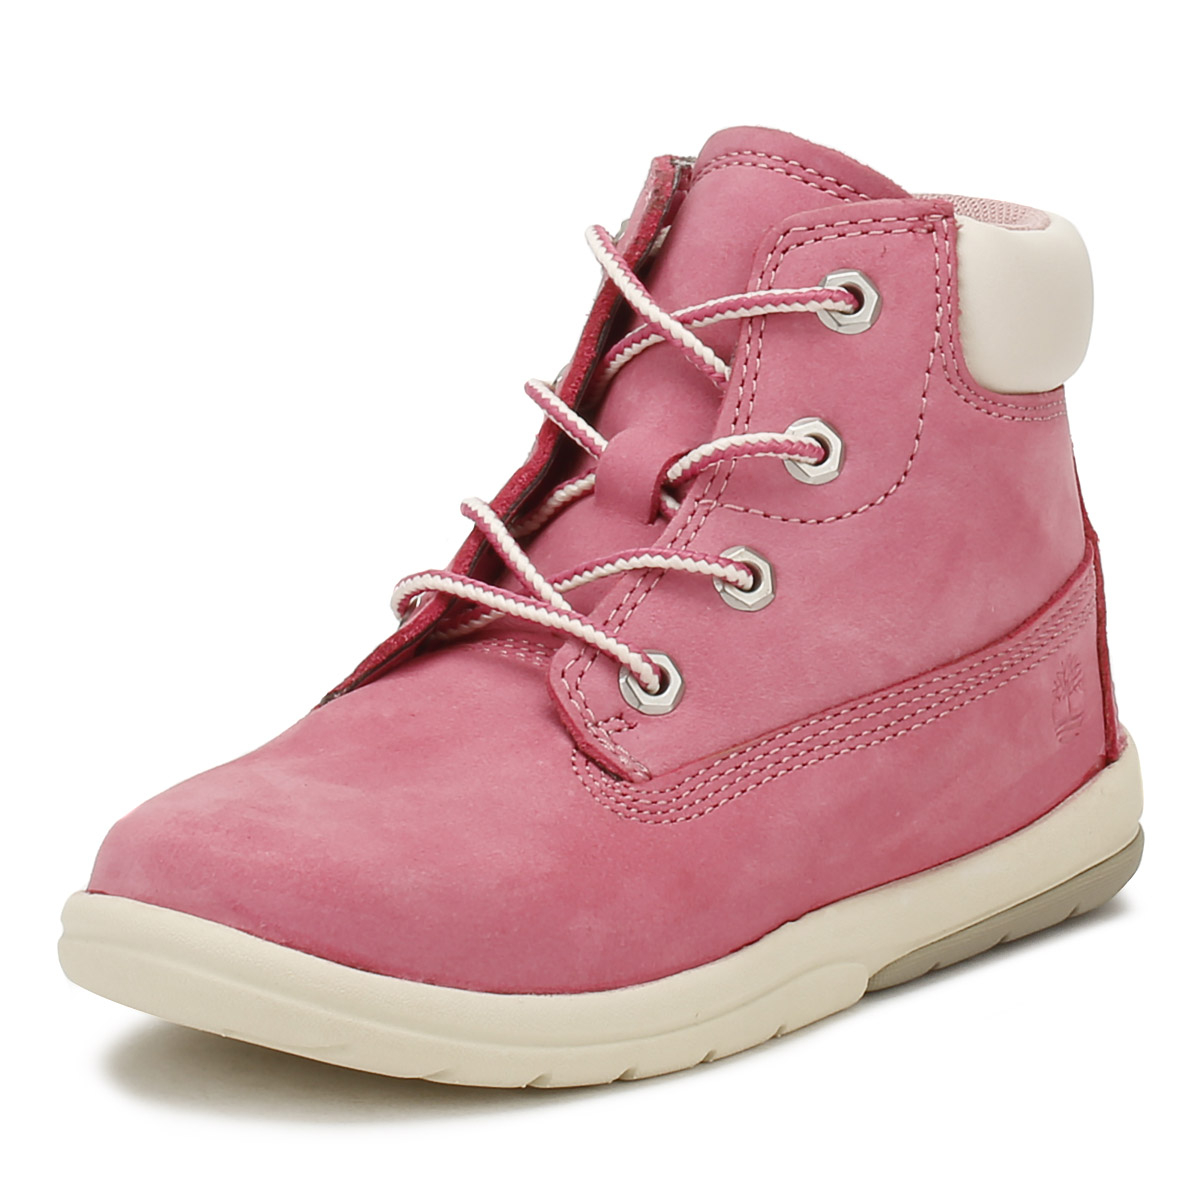 Details about Timberland Toddlers 6 Inch Boots Fuchsia Pink Toddle Tracks  Kids Leather Shoes 6a5173d8a